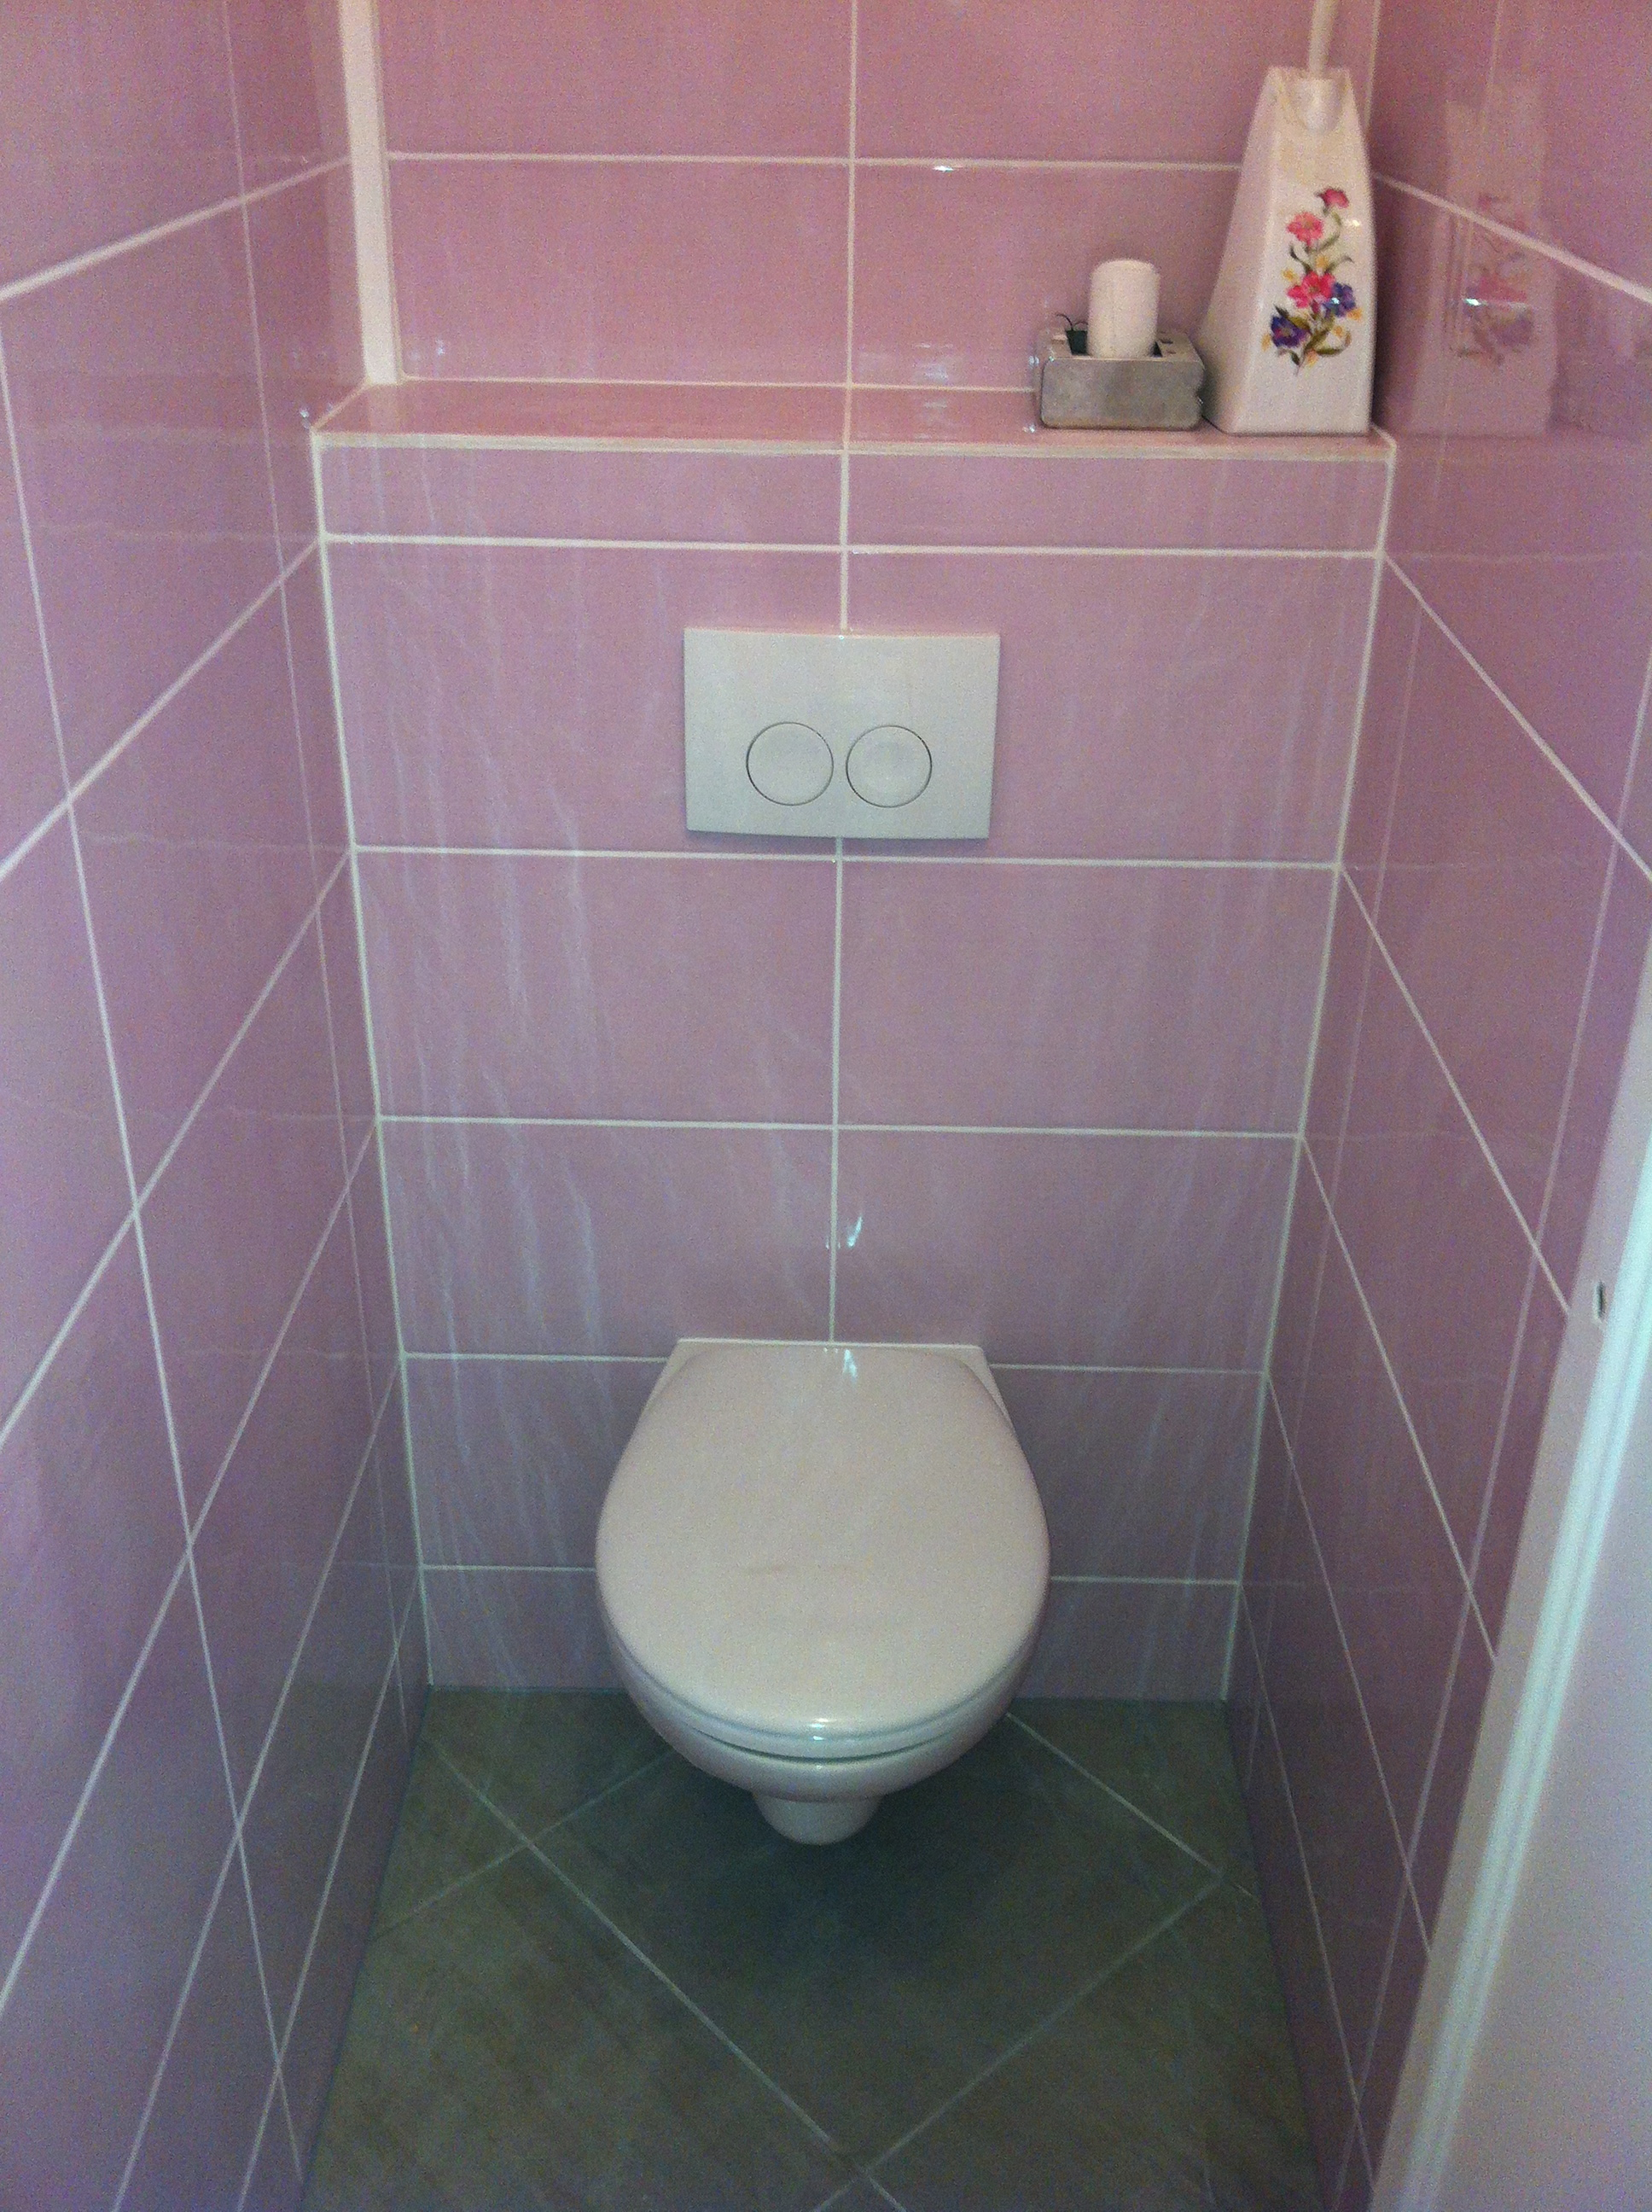 Wc suspendu wc encastr dream house for Poser du carrelage mosaique